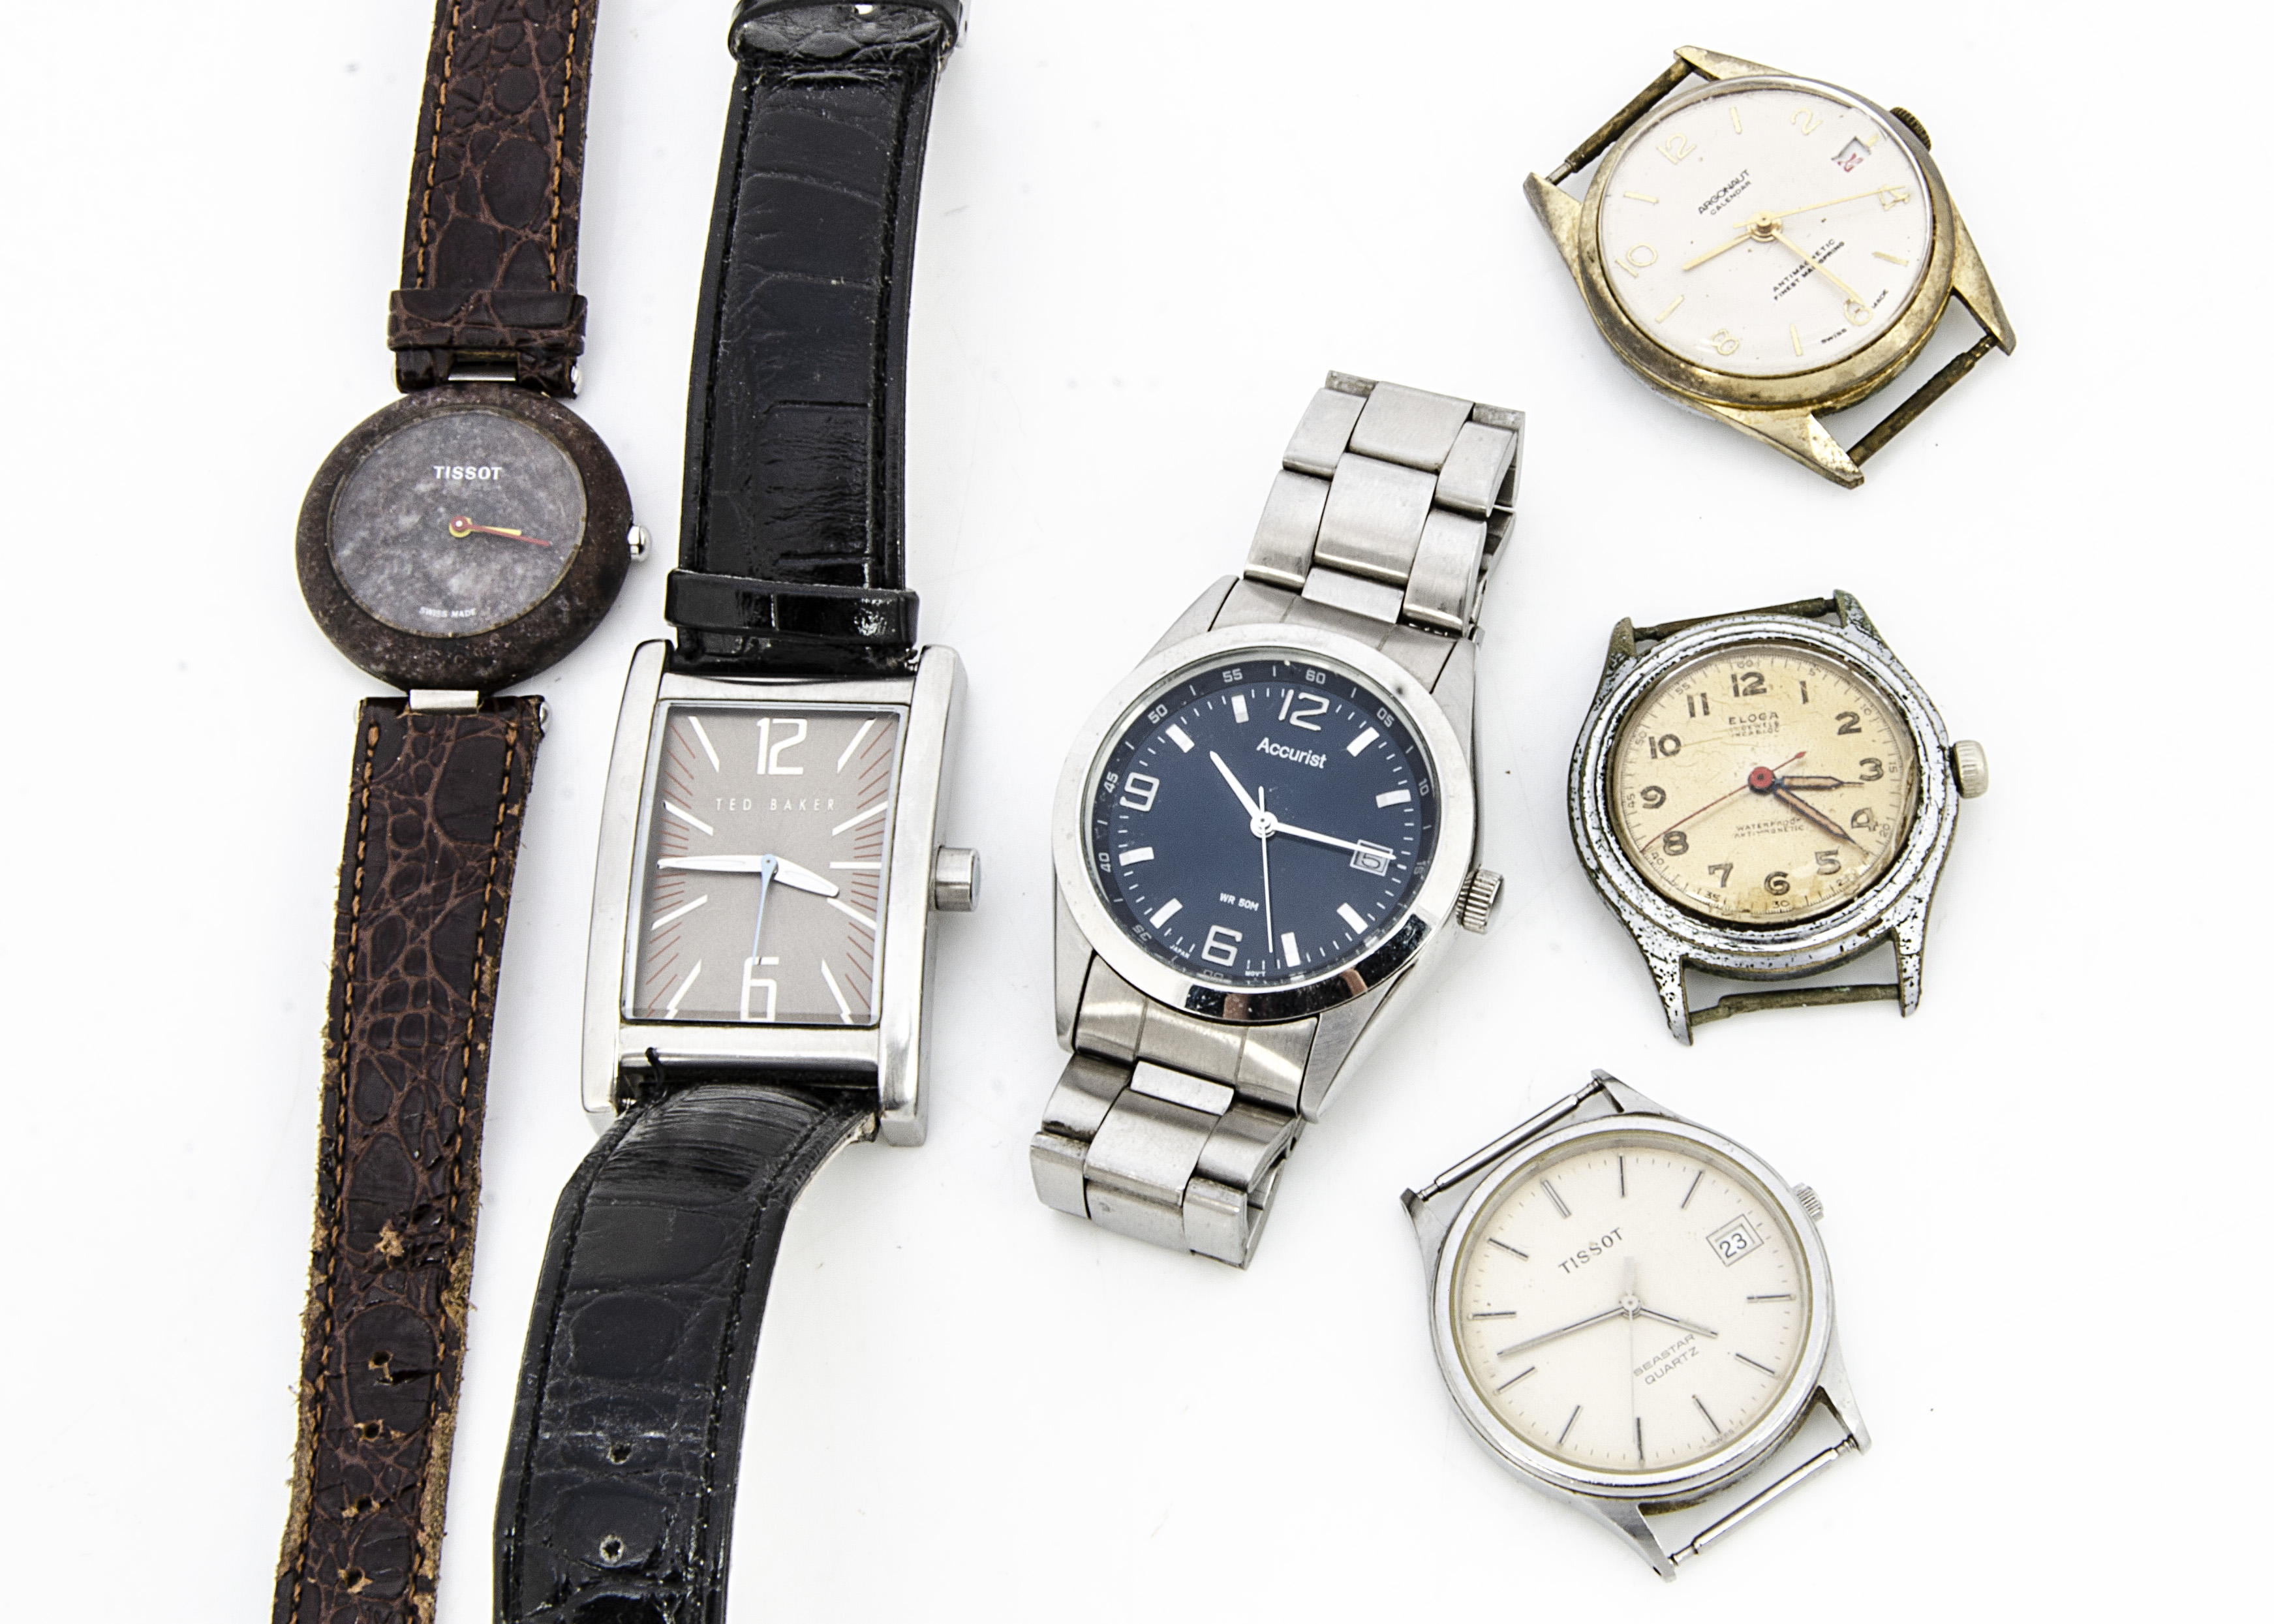 Six wristwatches, an Eloga manual wind, an Argonaut, two Tissot's, an Accurist and a Ted Baker